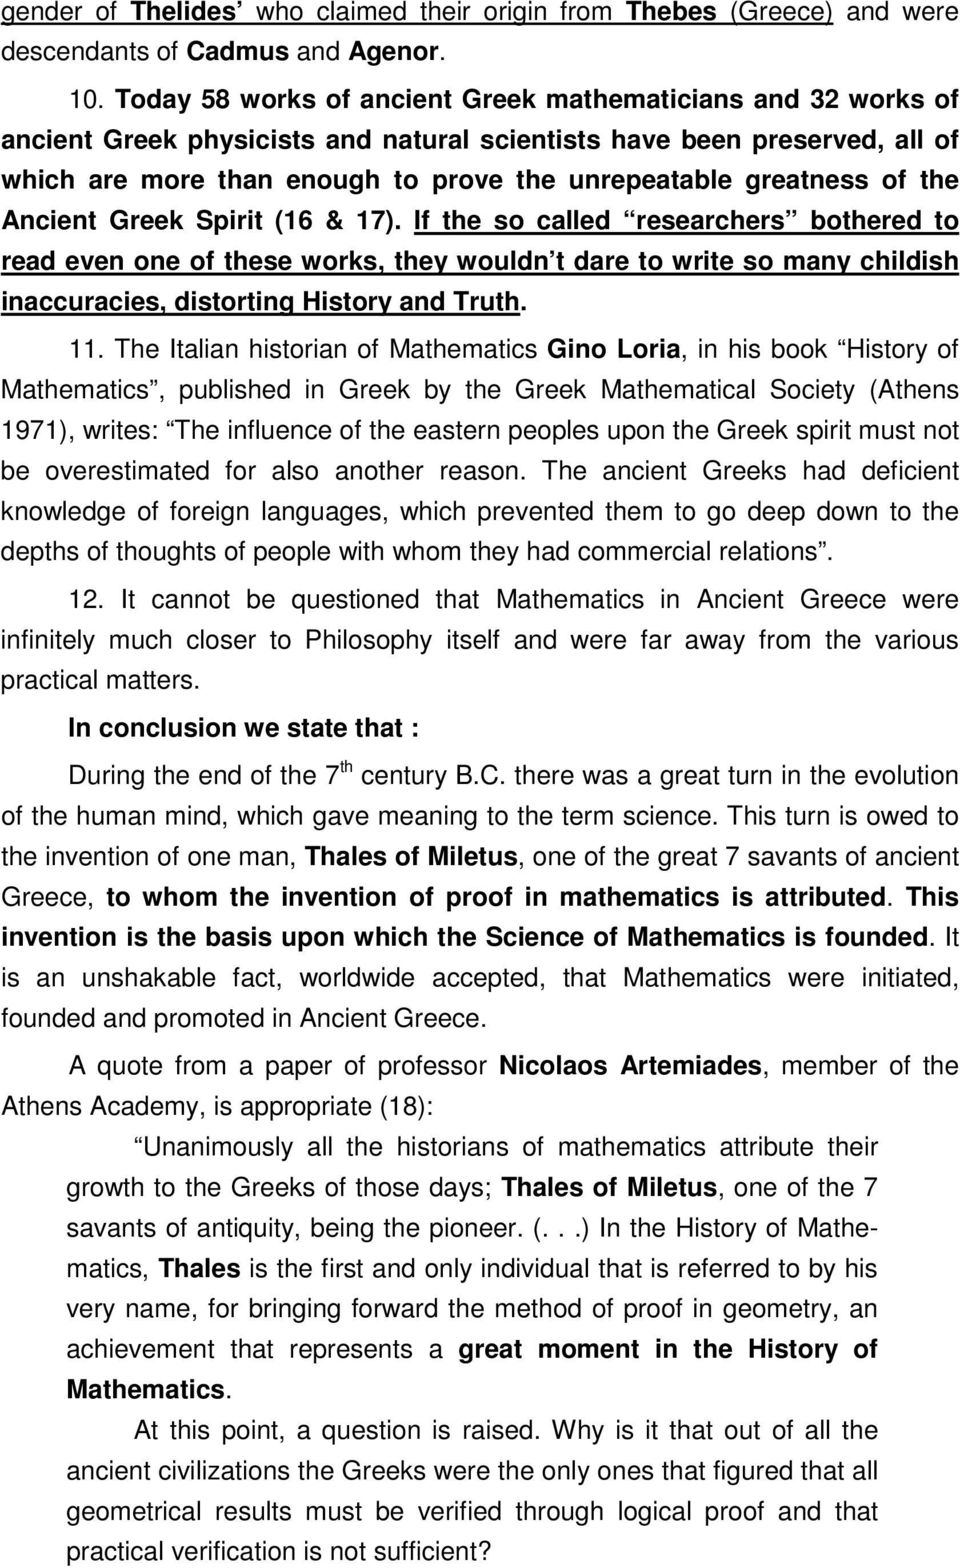 greatness of the Ancient Greek Spirit (16 & 17).